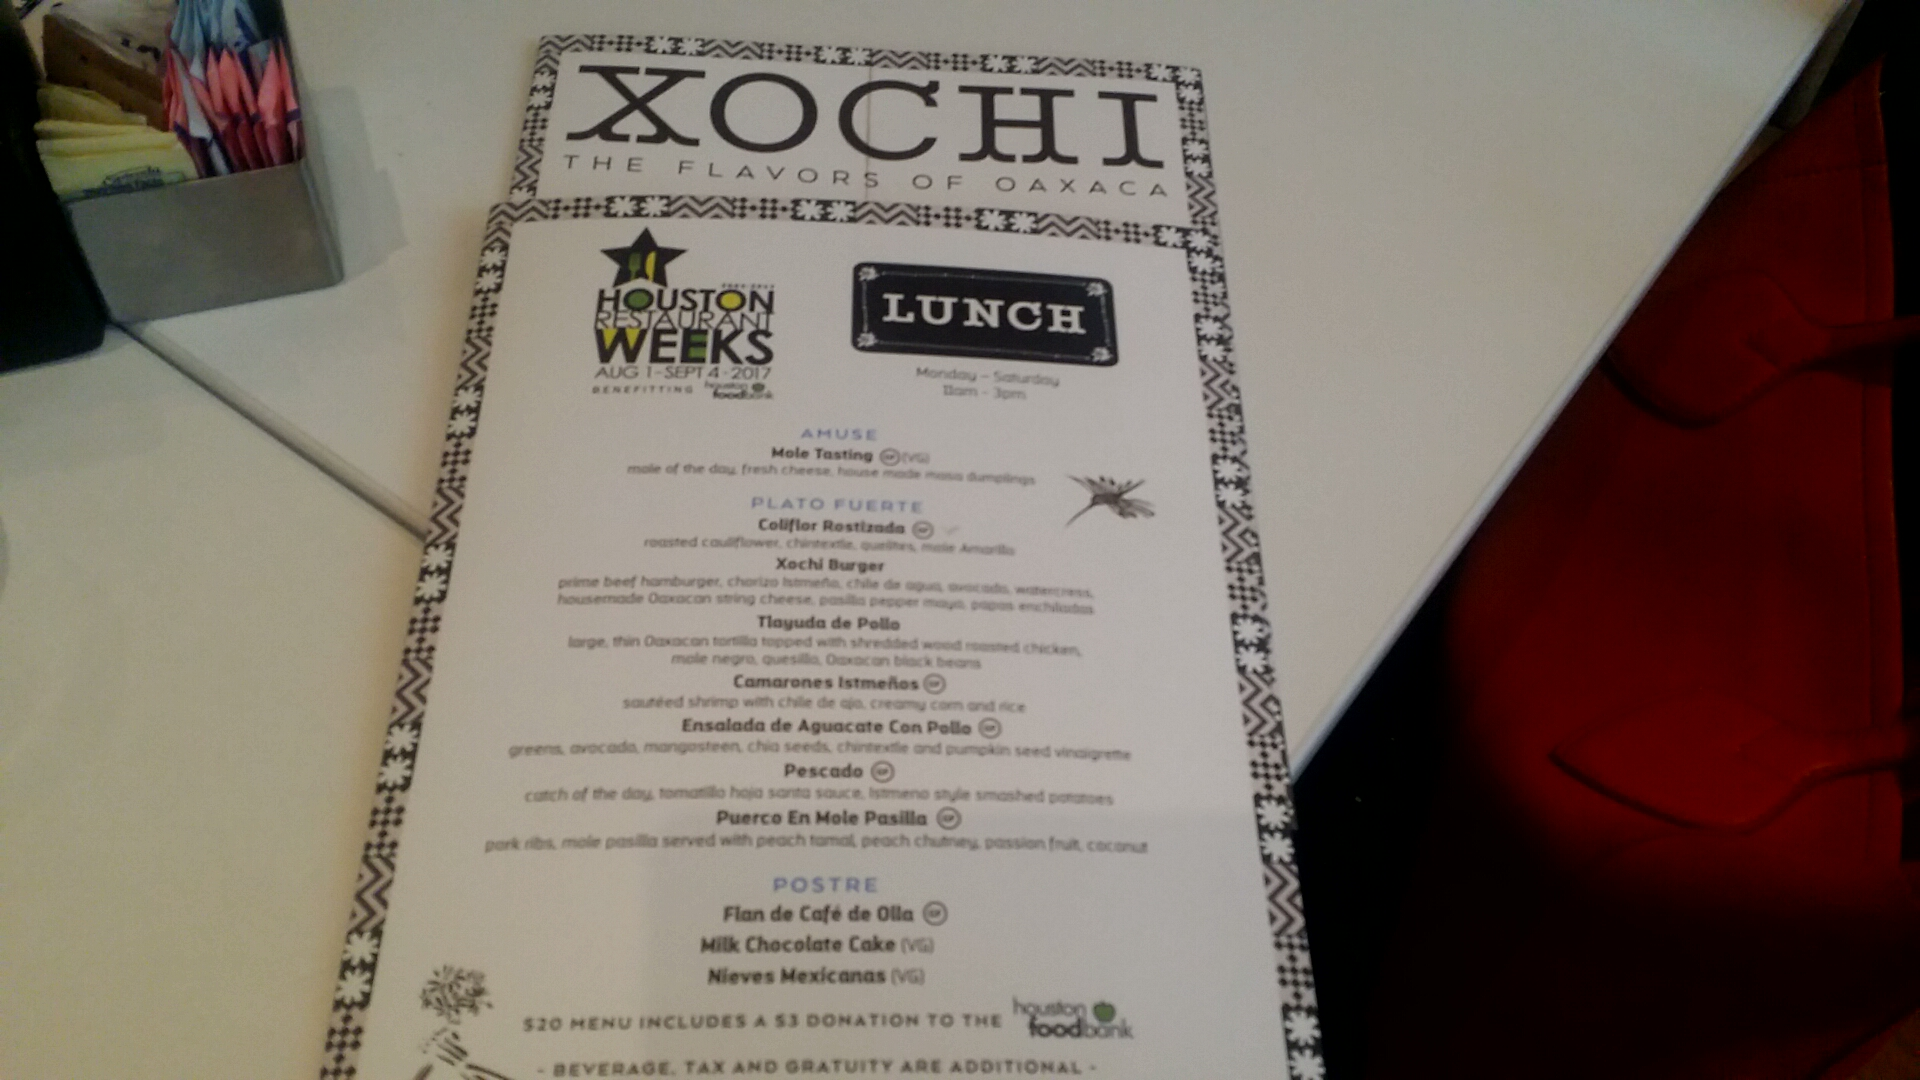 Xochi Restaurant Week Menu